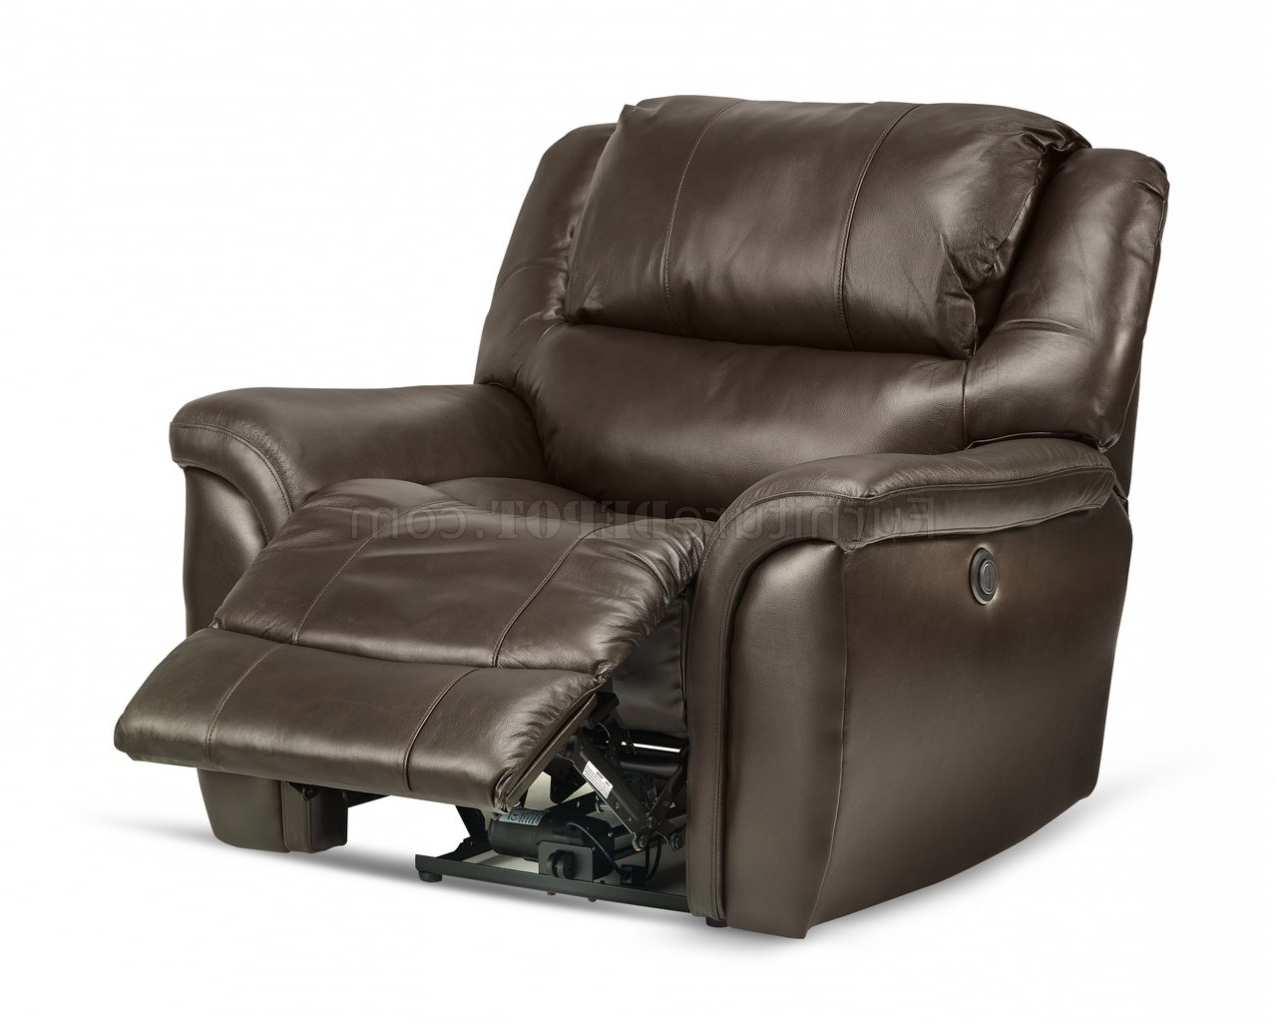 Expedition Brown Power Reclining Sofas Throughout Well Liked Dawson Power Reclining Sofa Set In Brown Leather Match (View 15 of 20)